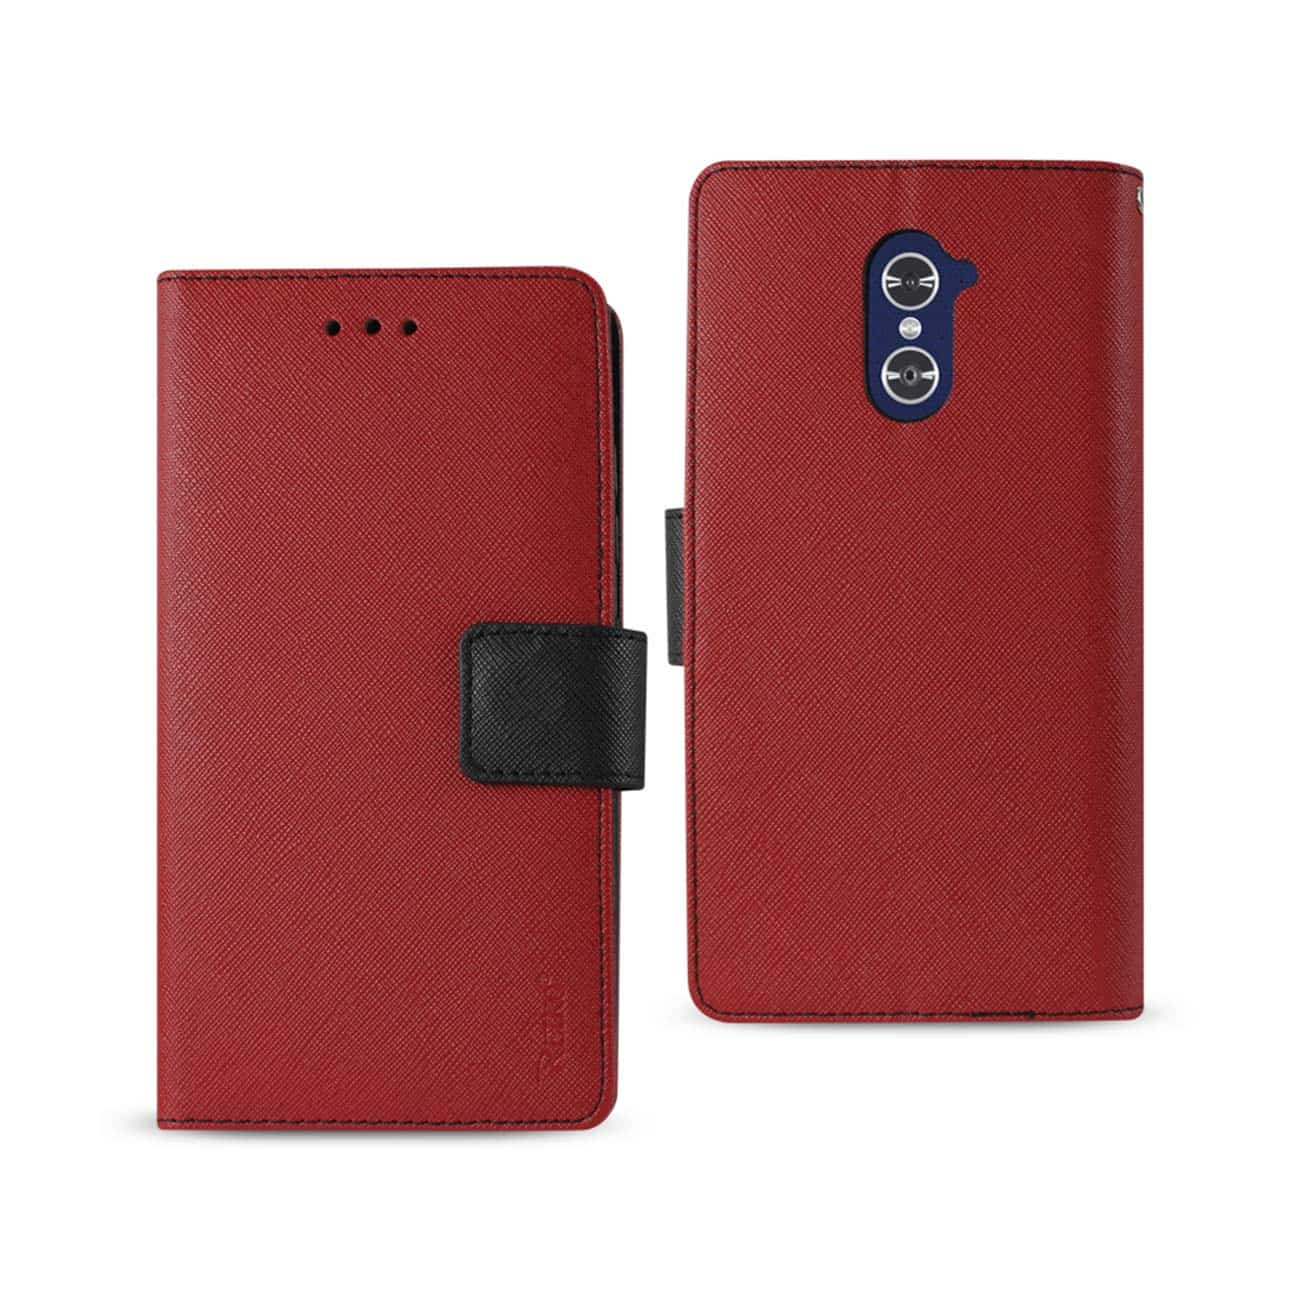 ZTE GRAND X MAX 2 3-IN-1 WALLET CASE IN RED